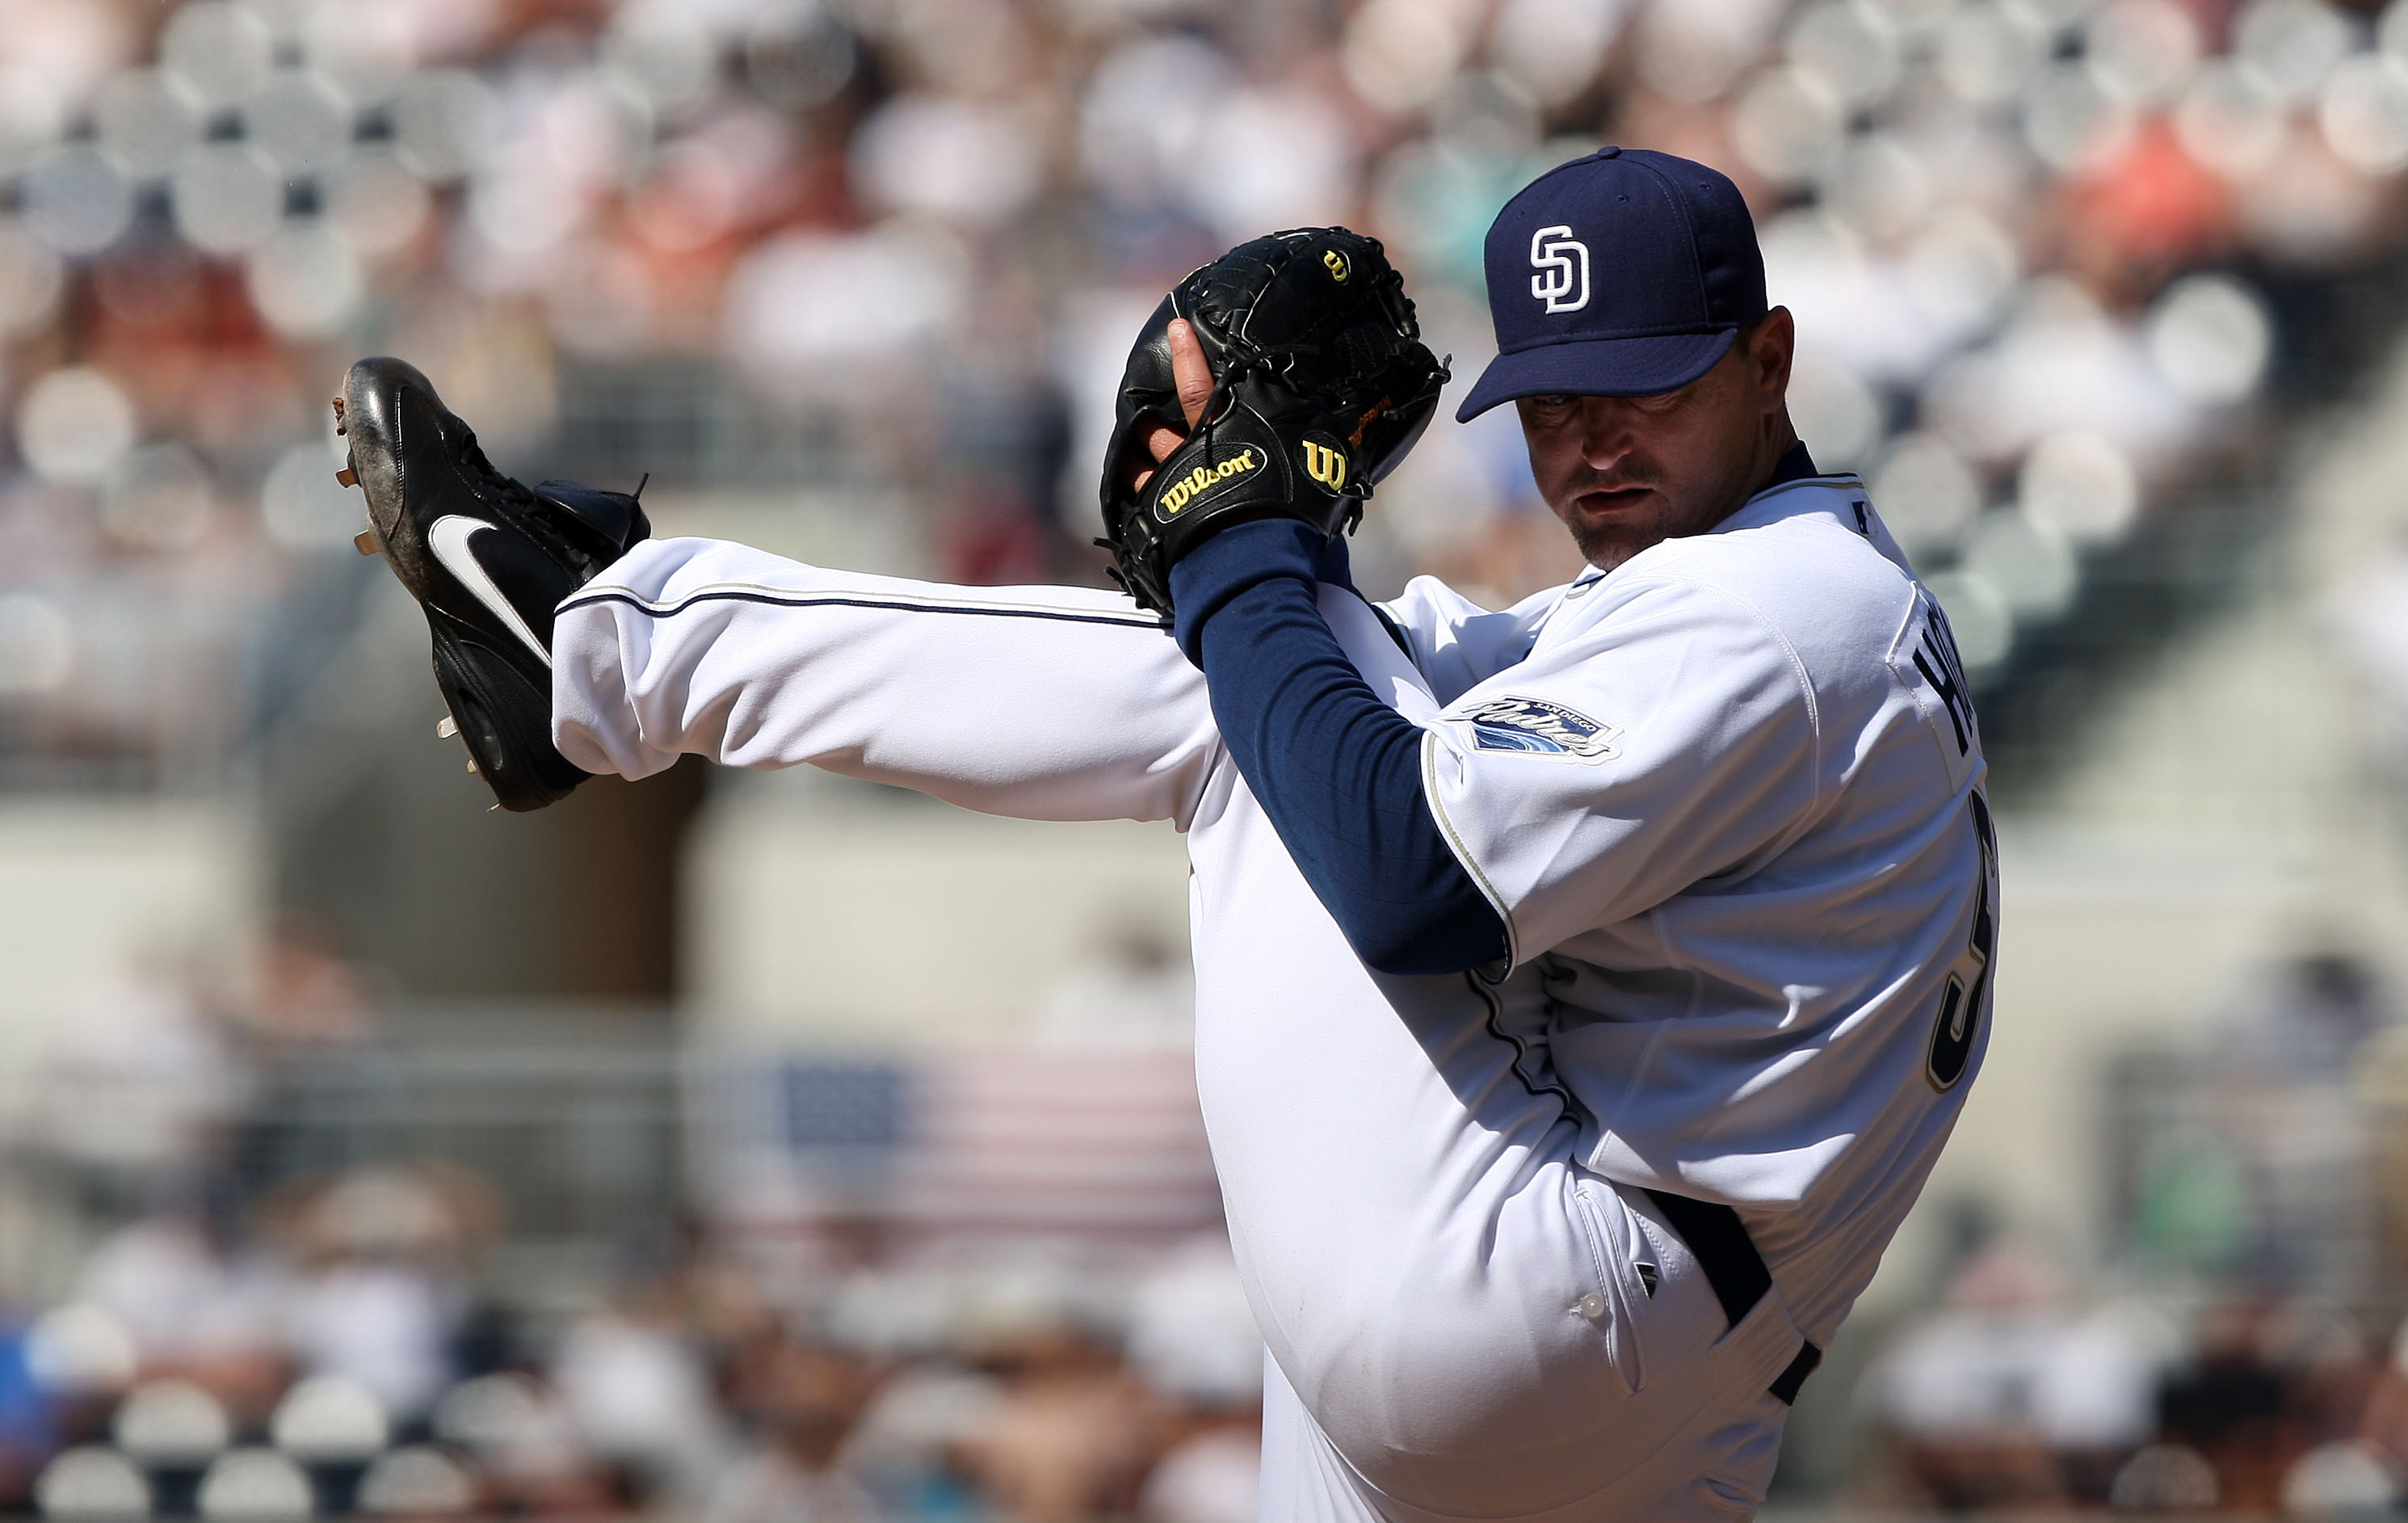 The high leg kick of Trevor Hoffman was as intimidating as his stare